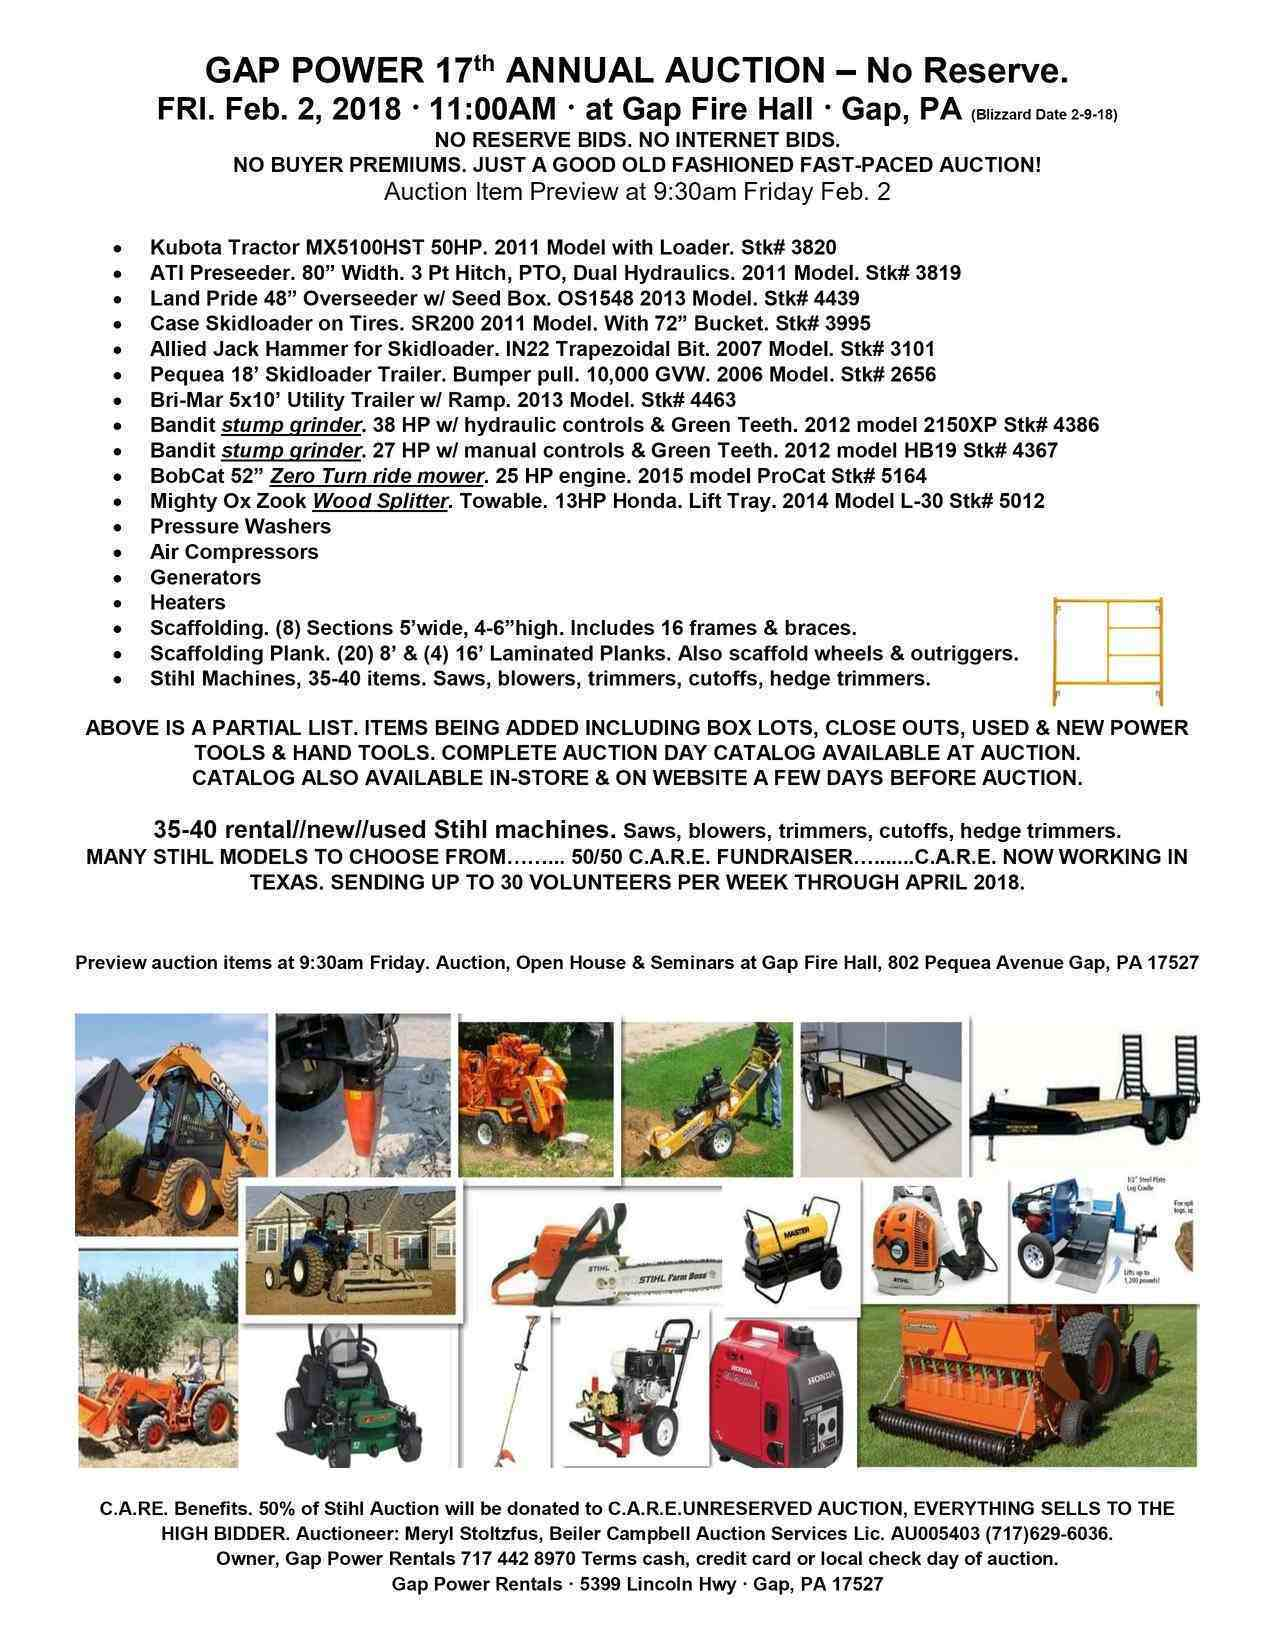 2018 Auction Scheduled For Friday Feb. 2 2018 at 11:00 am.